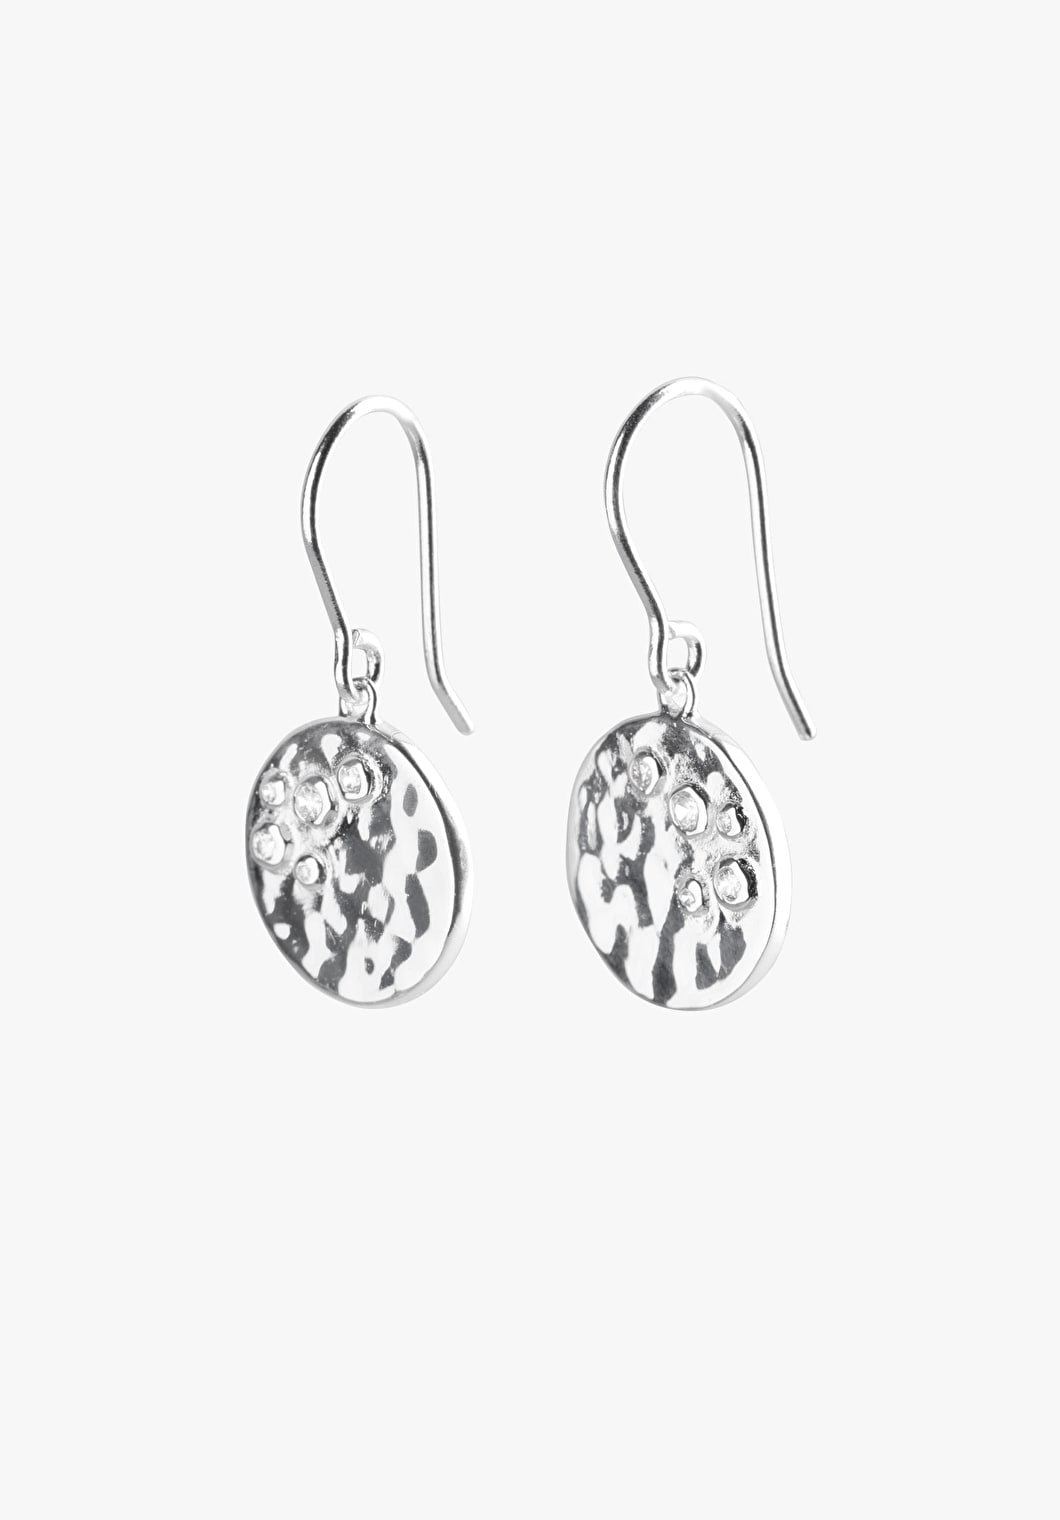 Hammered Coin Earrings | hush